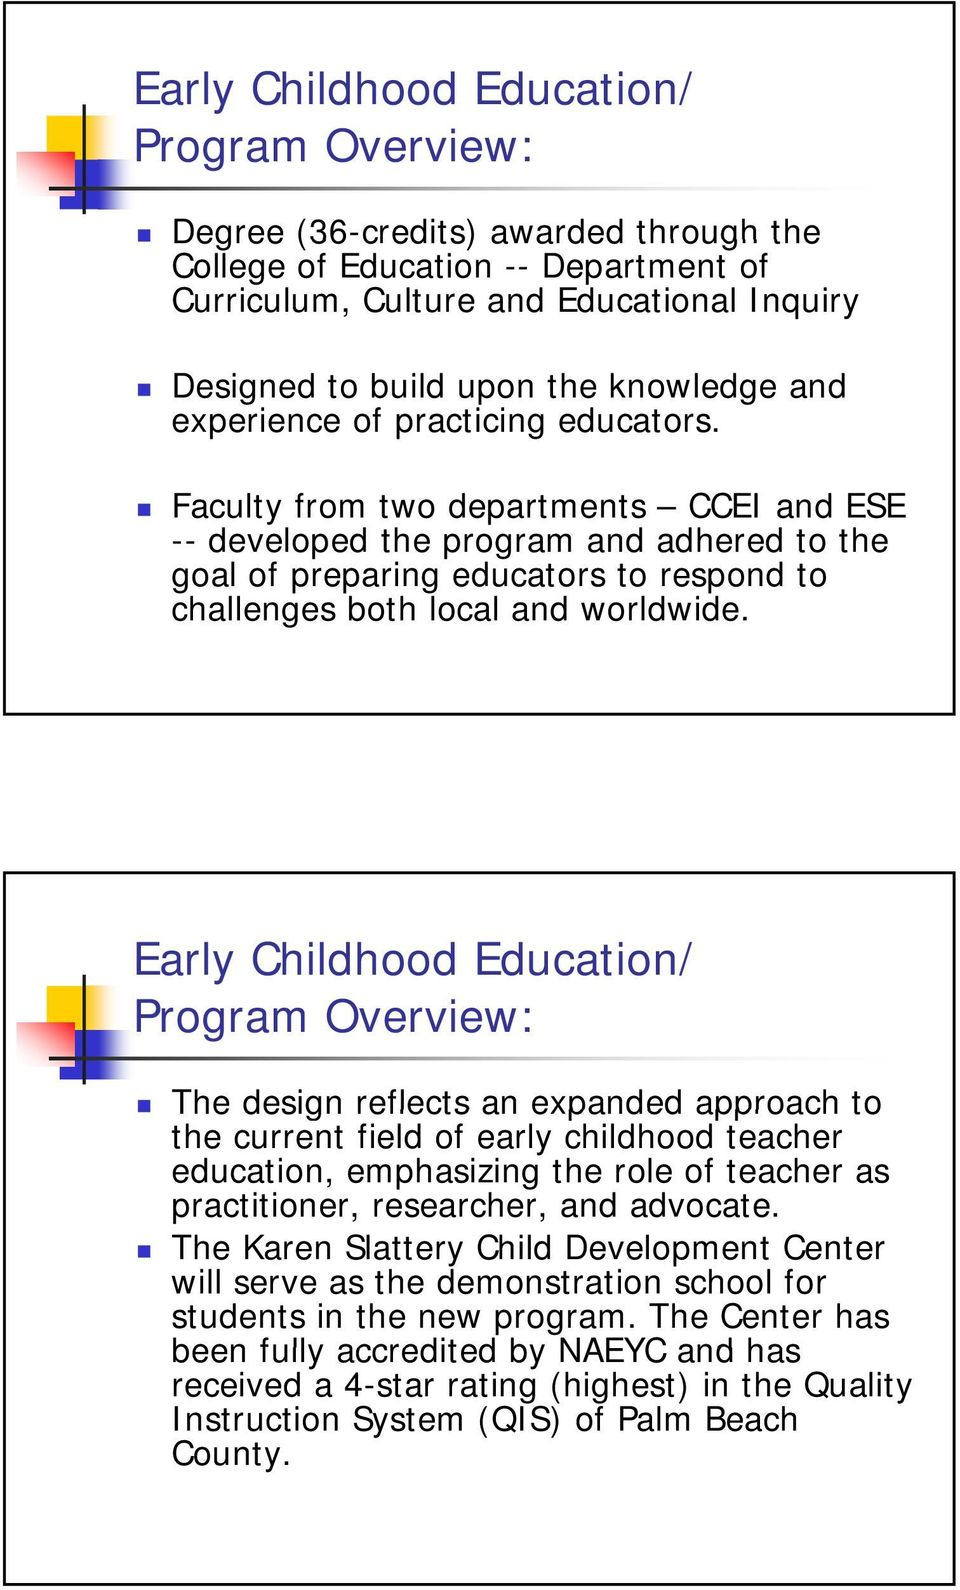 Program Overview: The design reflects an expanded approach to the current field of early childhood teacher education, emphasizing the role of teacher as practitioner, researcher, and advocate.